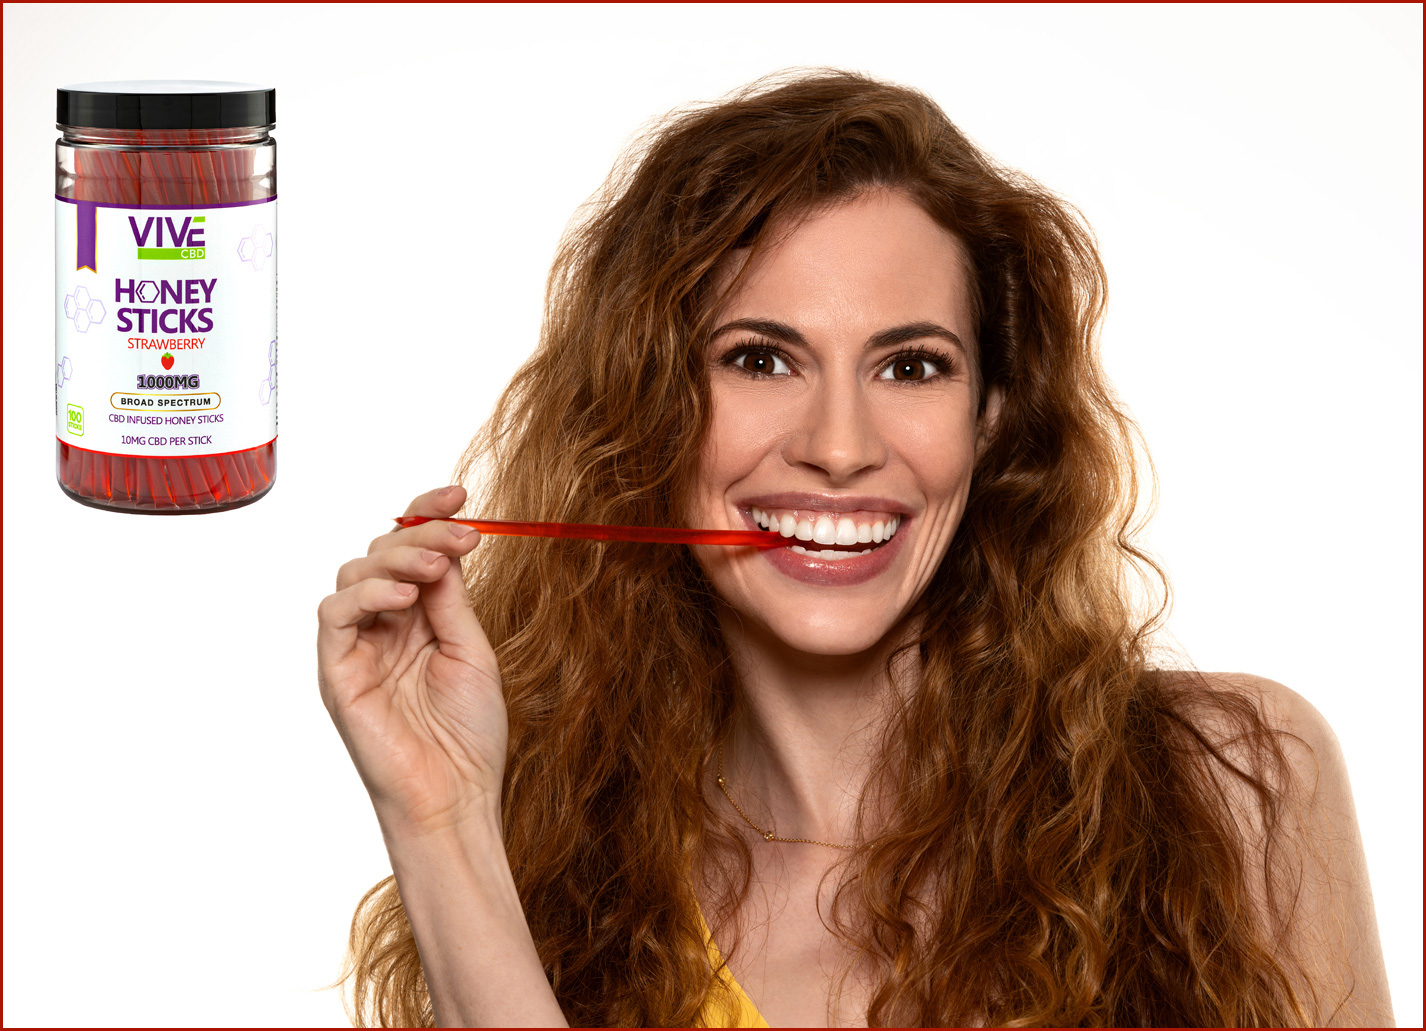 photography of a model with products for website advertising